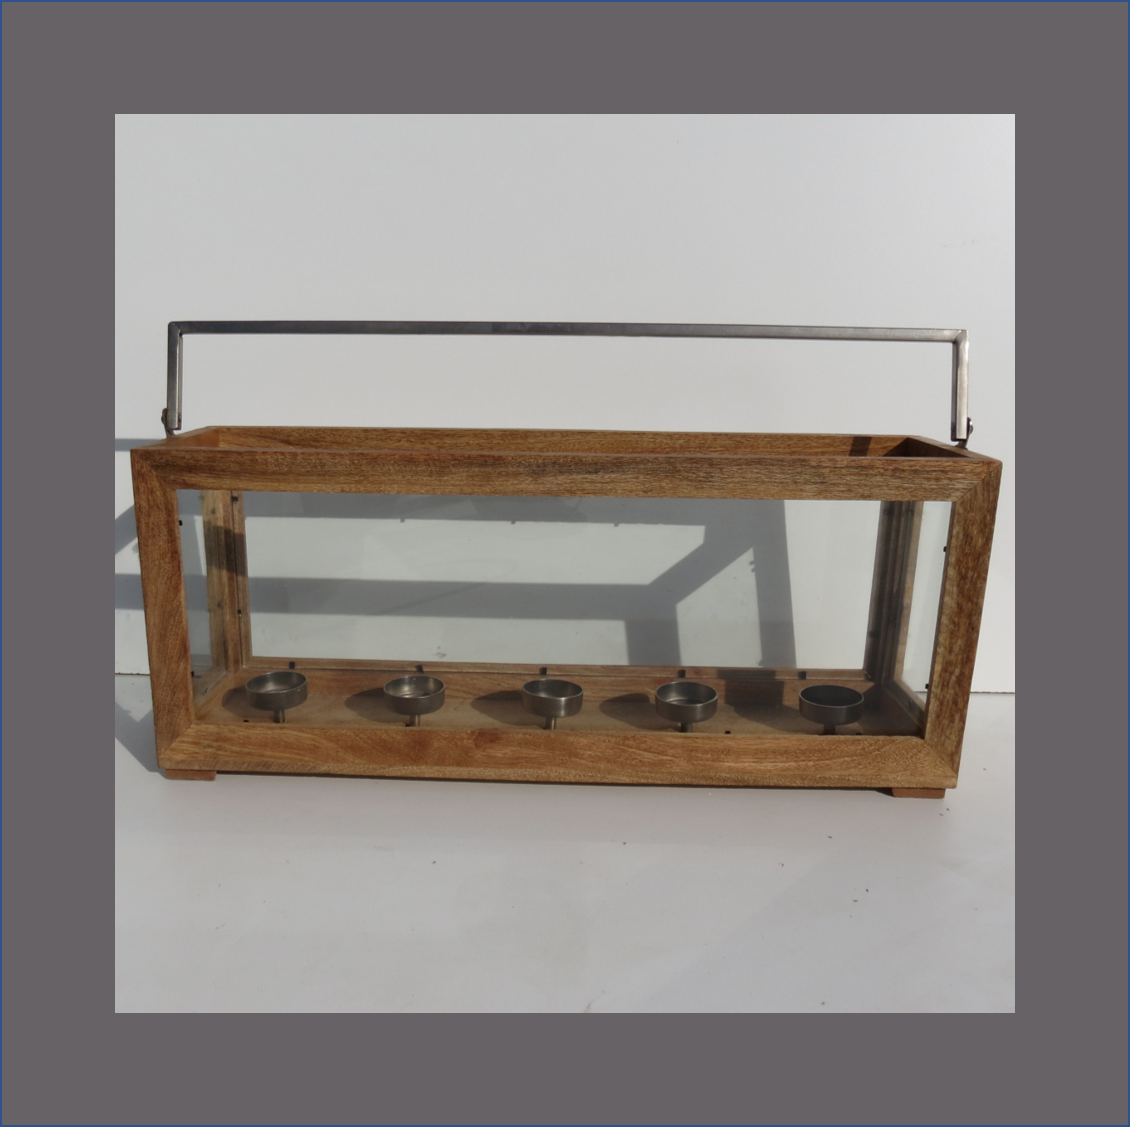 corricraft-wood-and-glass-candle-display-unit